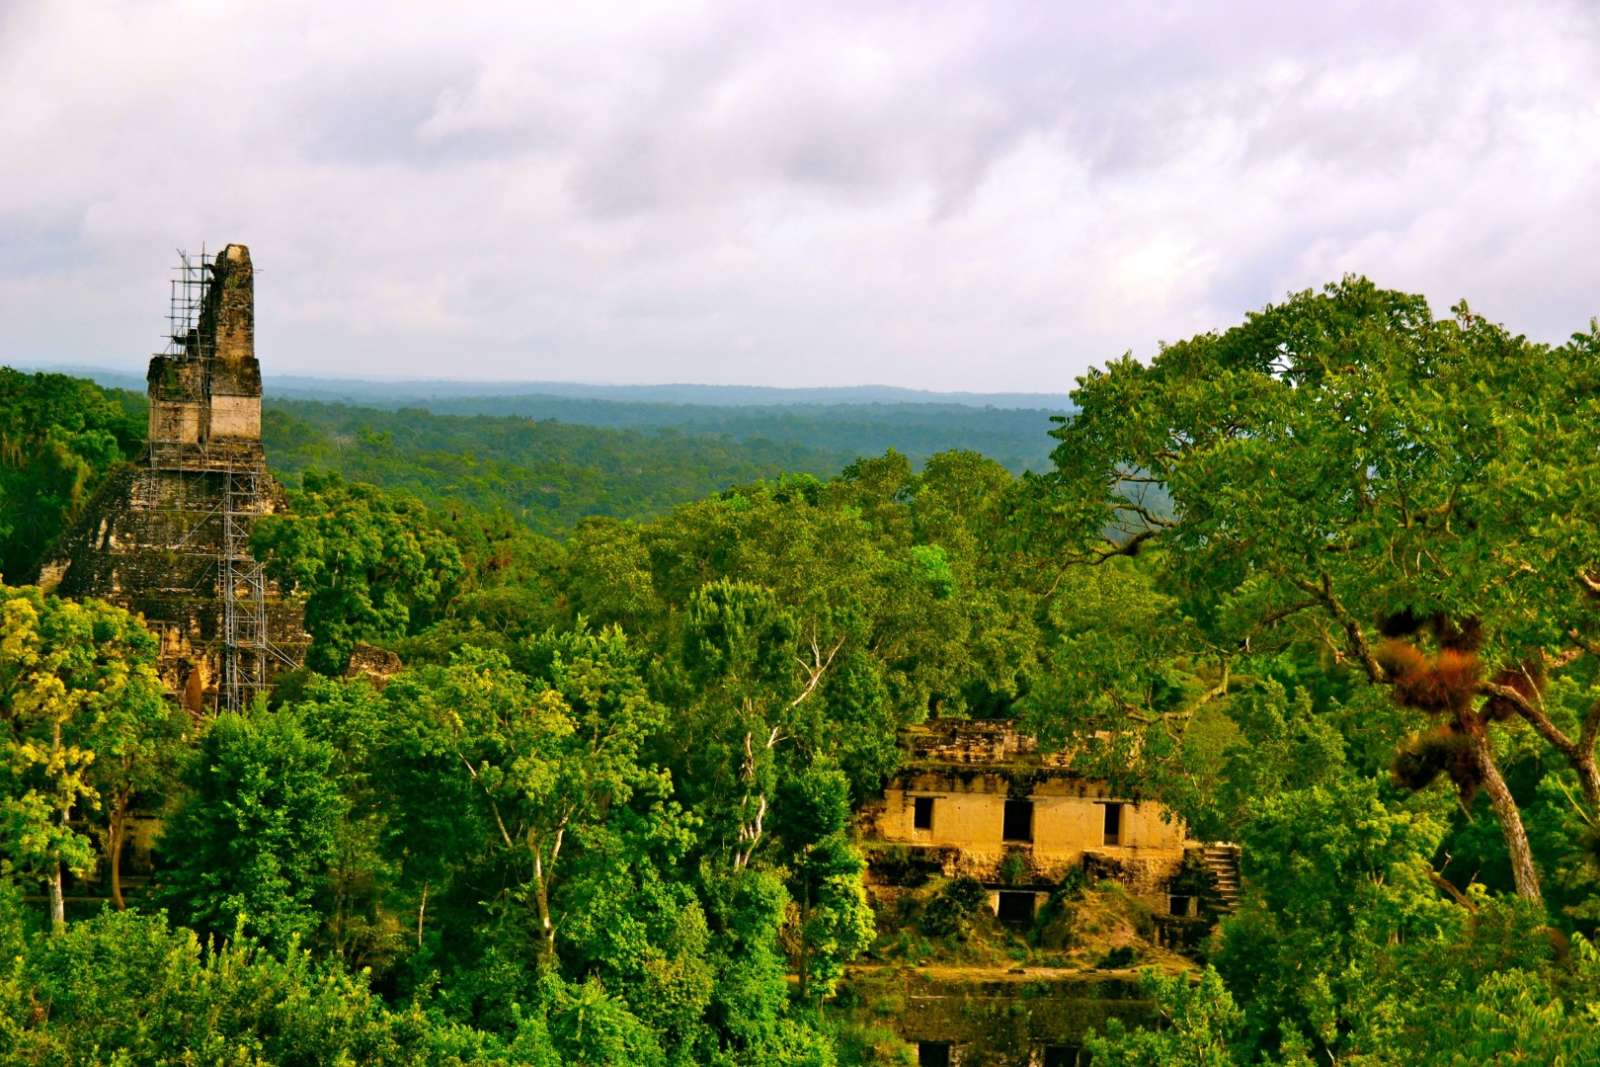 Dense jungle at Tikal, Guatemala